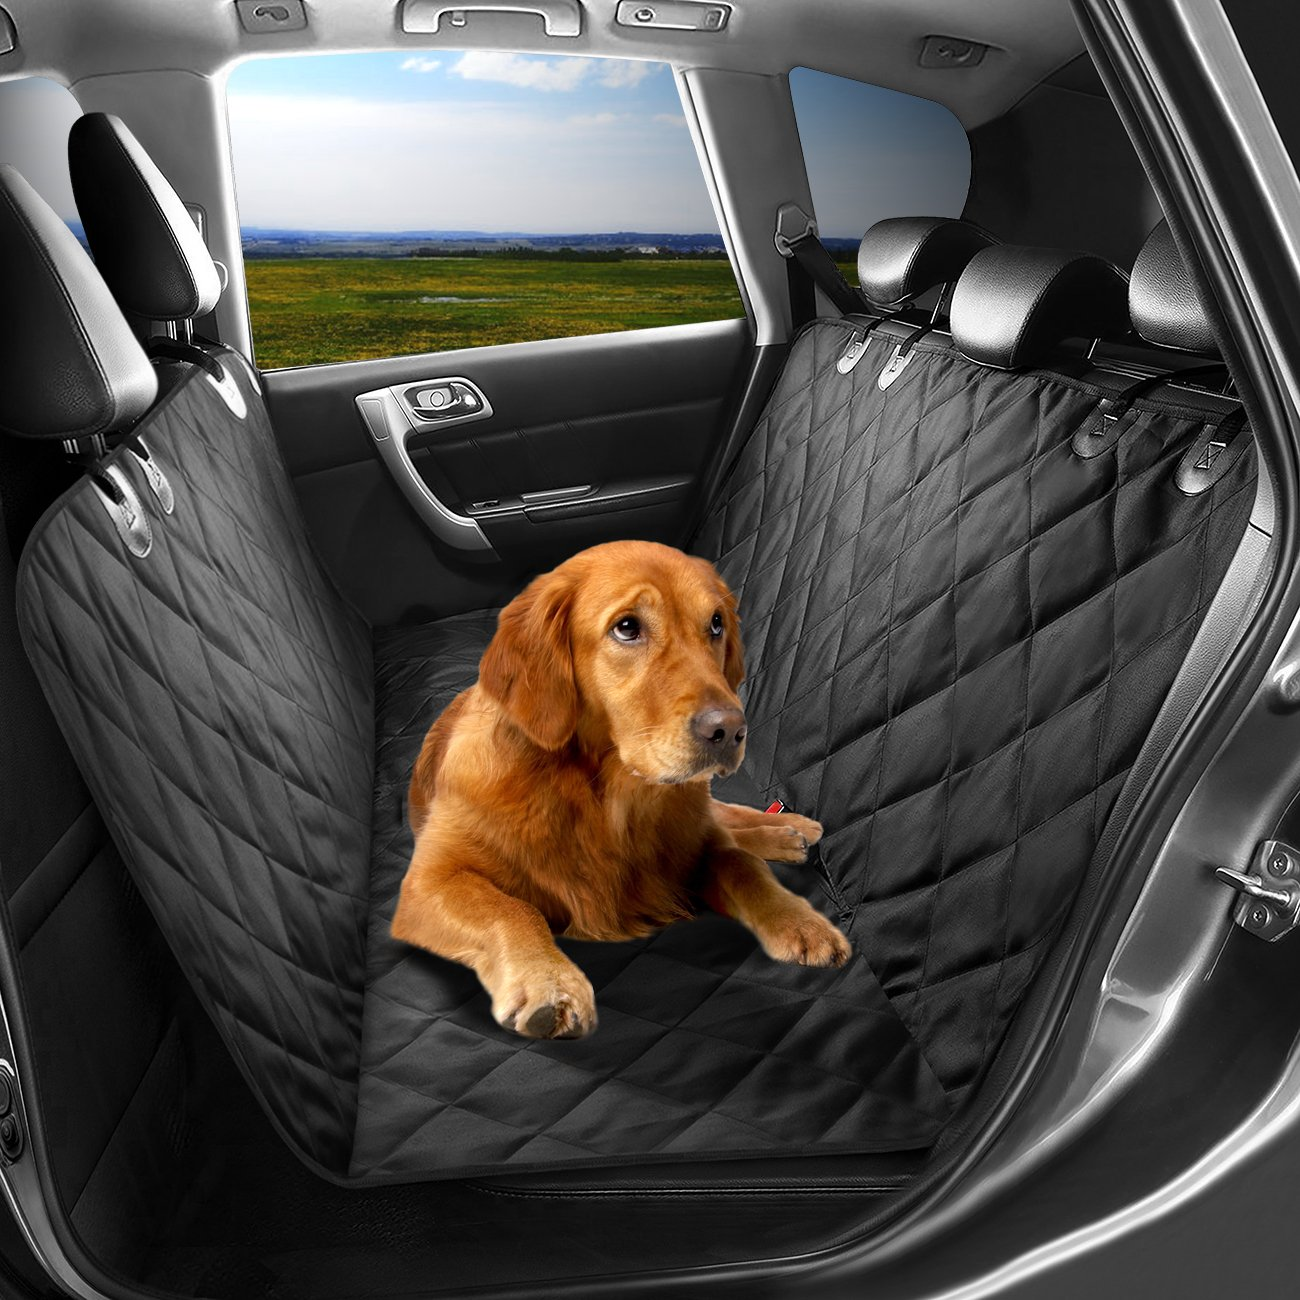 APlus+ My You and ME Pet Seat Cover, Dog Hammock, Waterproof Dog Car Seat Cover Protector with Non Slip Silicone Backing for Cars, Trucks, SUVs with Non Slip Backing, Soft, Large, Black